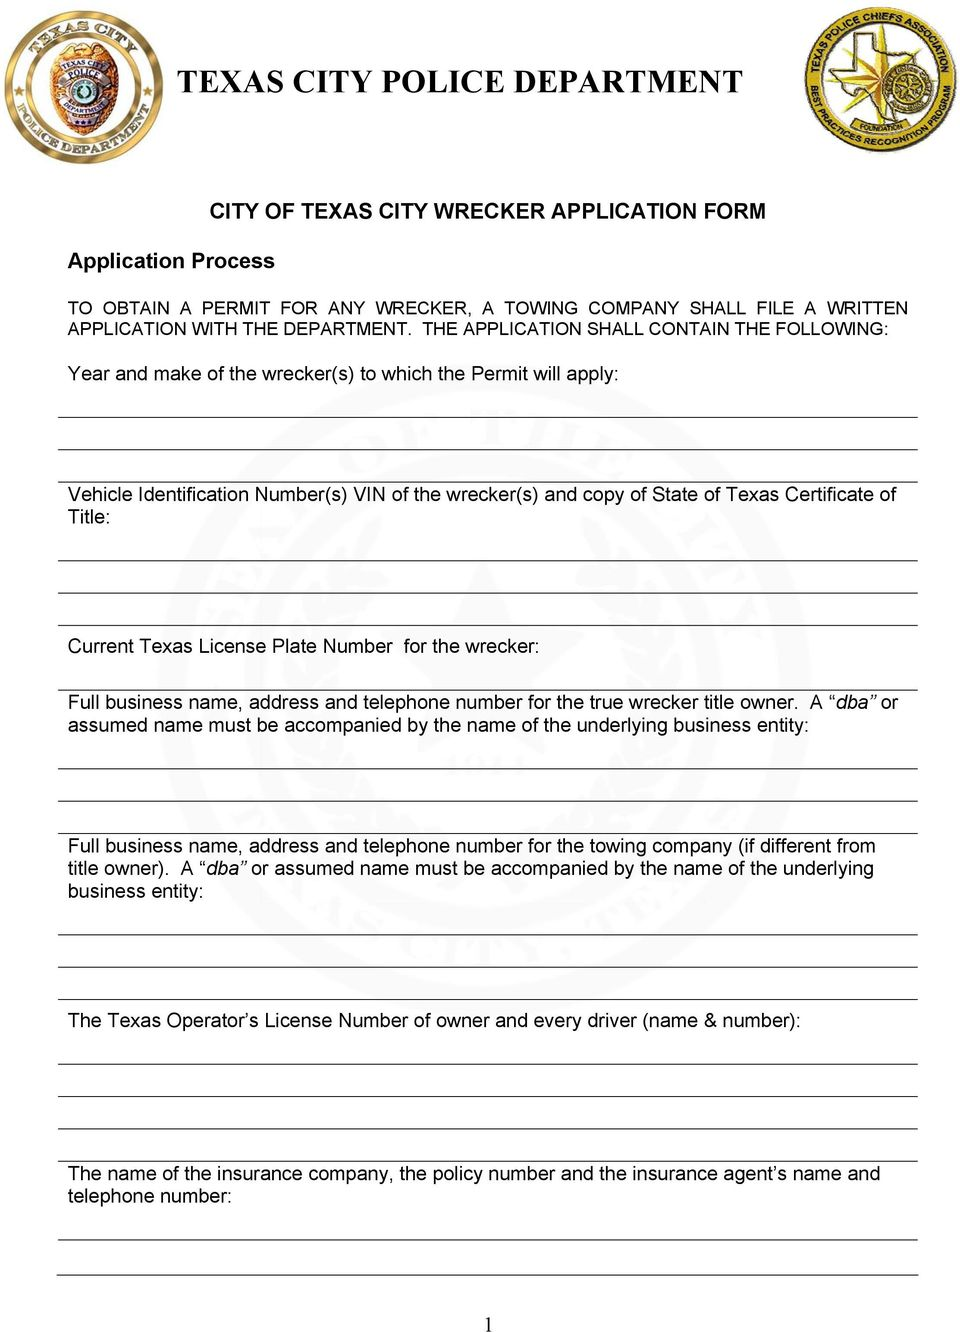 Certificate of Title: Current Texas License Plate Number for the wrecker: Full business name, address and telephone number for the true wrecker title owner.